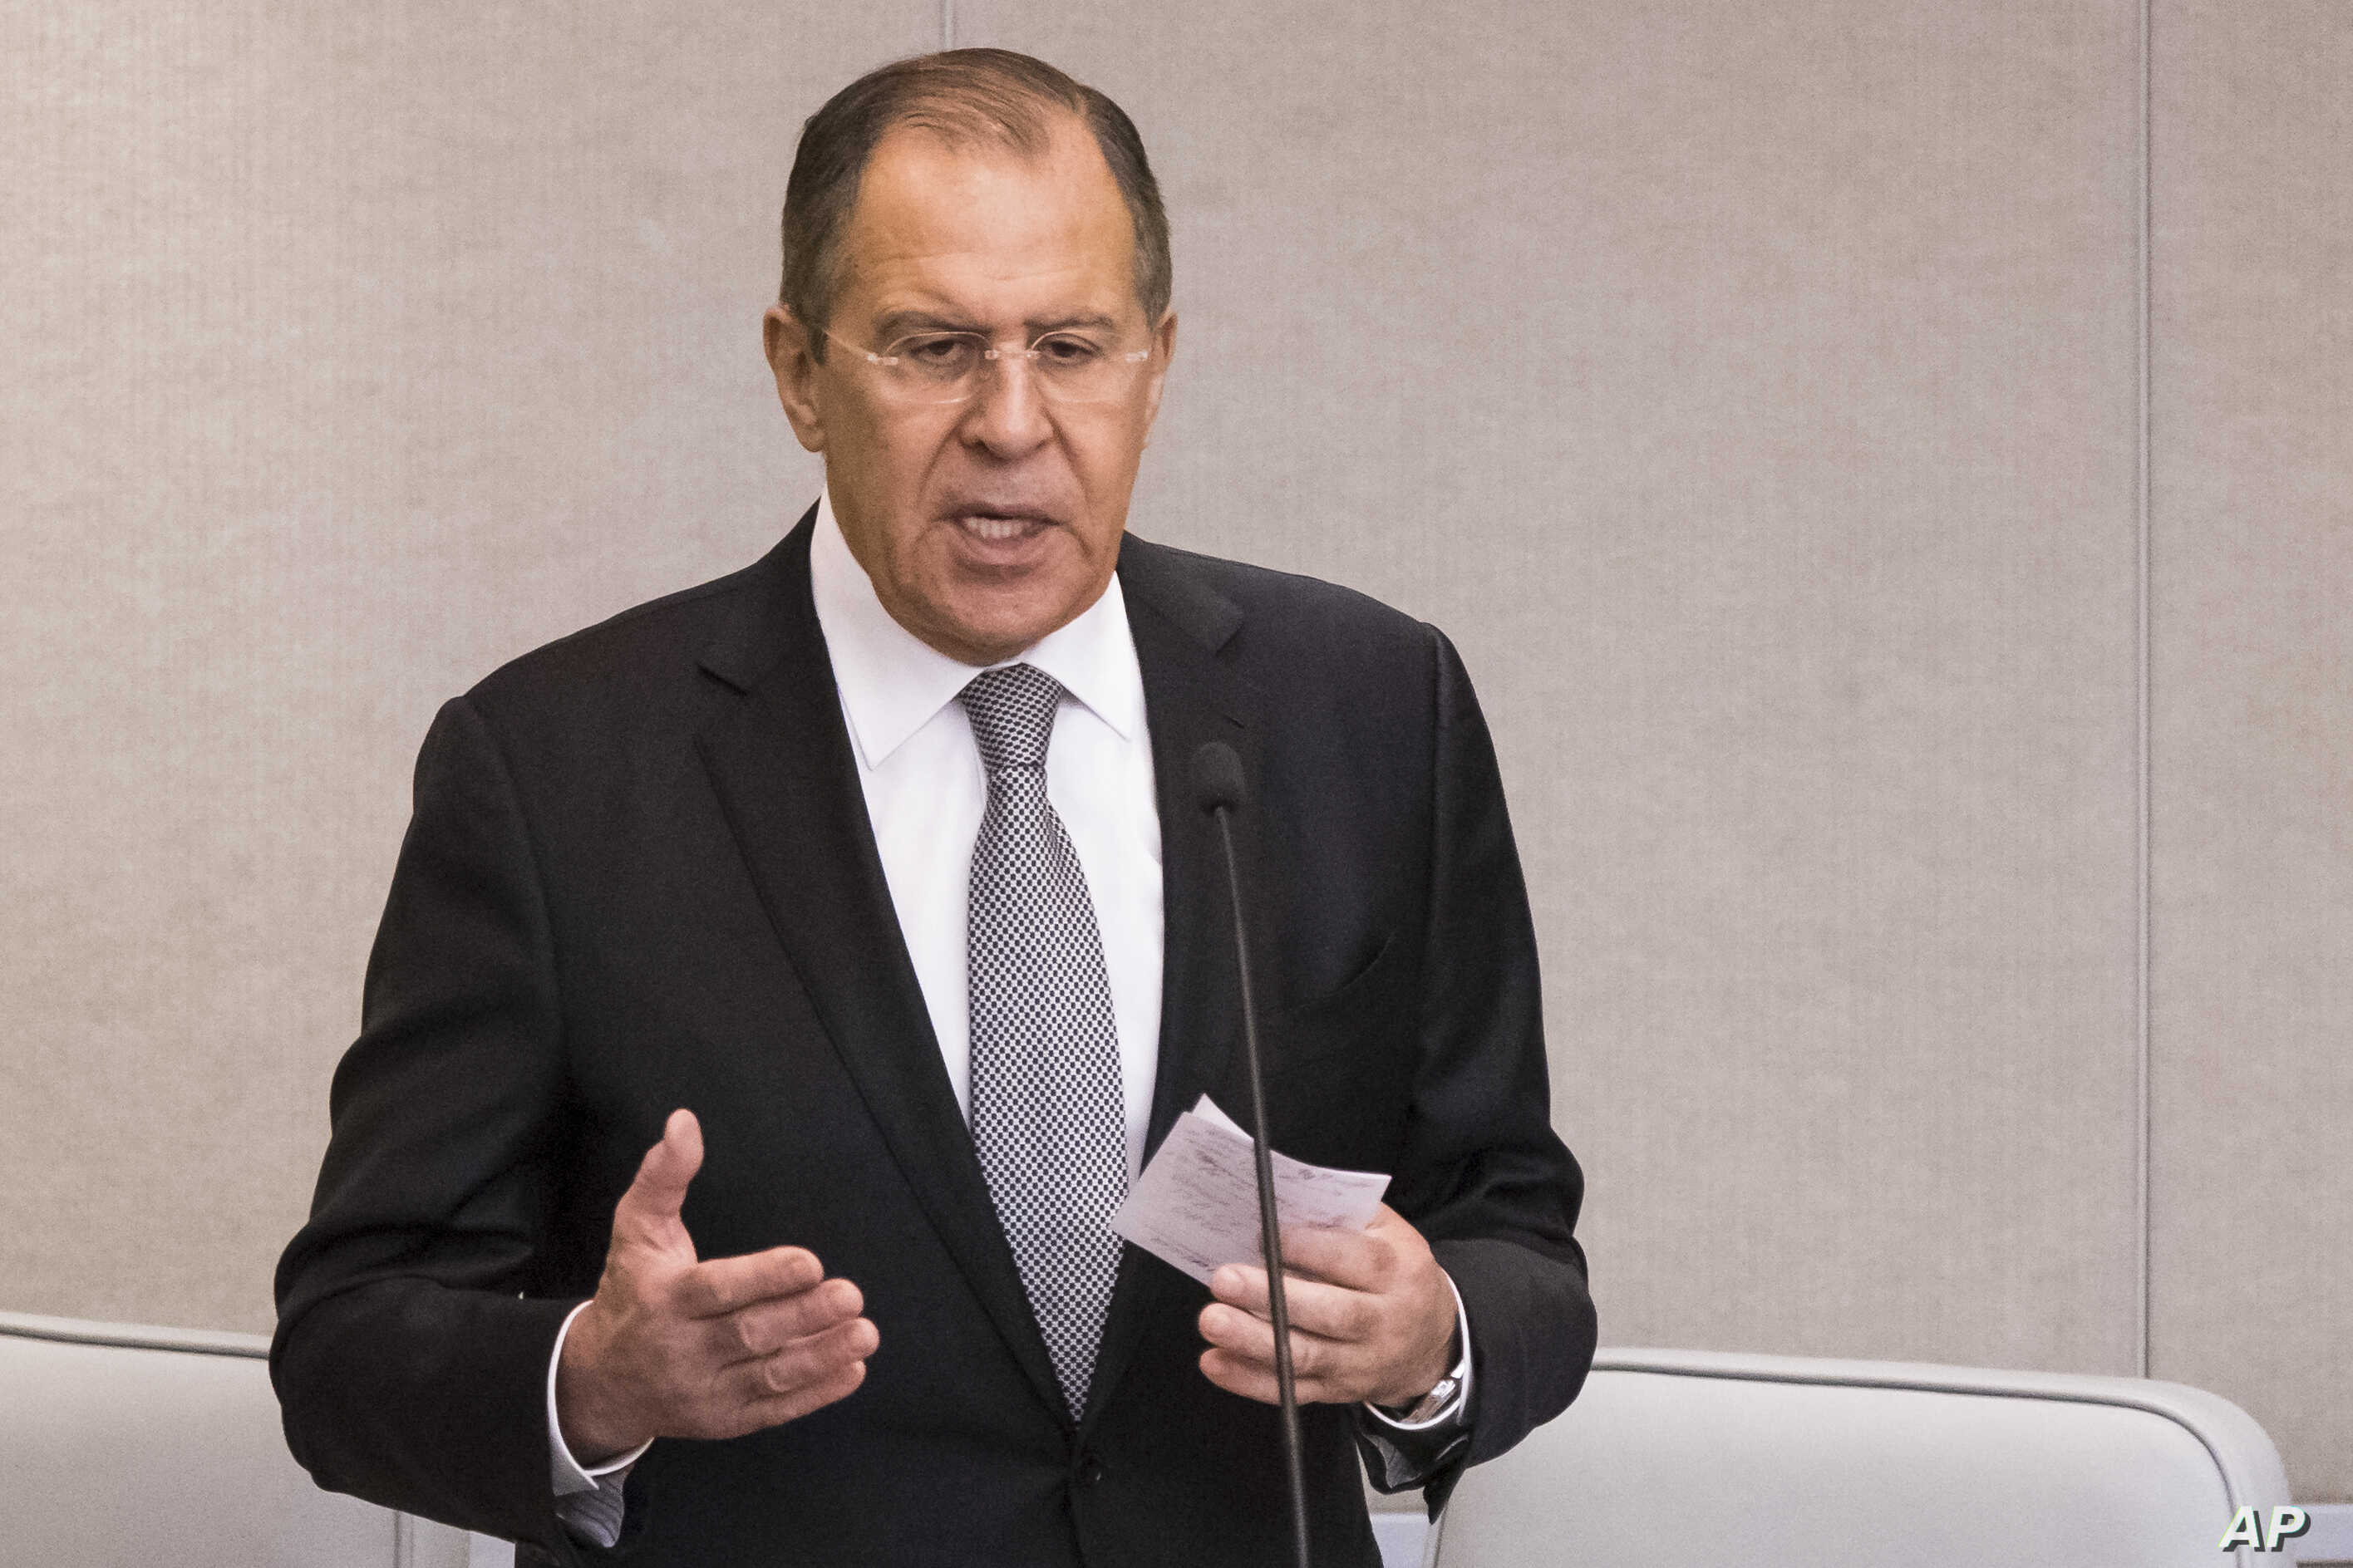 Russian Foreign Minister Sergey Lavrov answers question about peace talks for Syria in the State Duma, lower parliament house, in Moscow, Jan. 25, 2017.